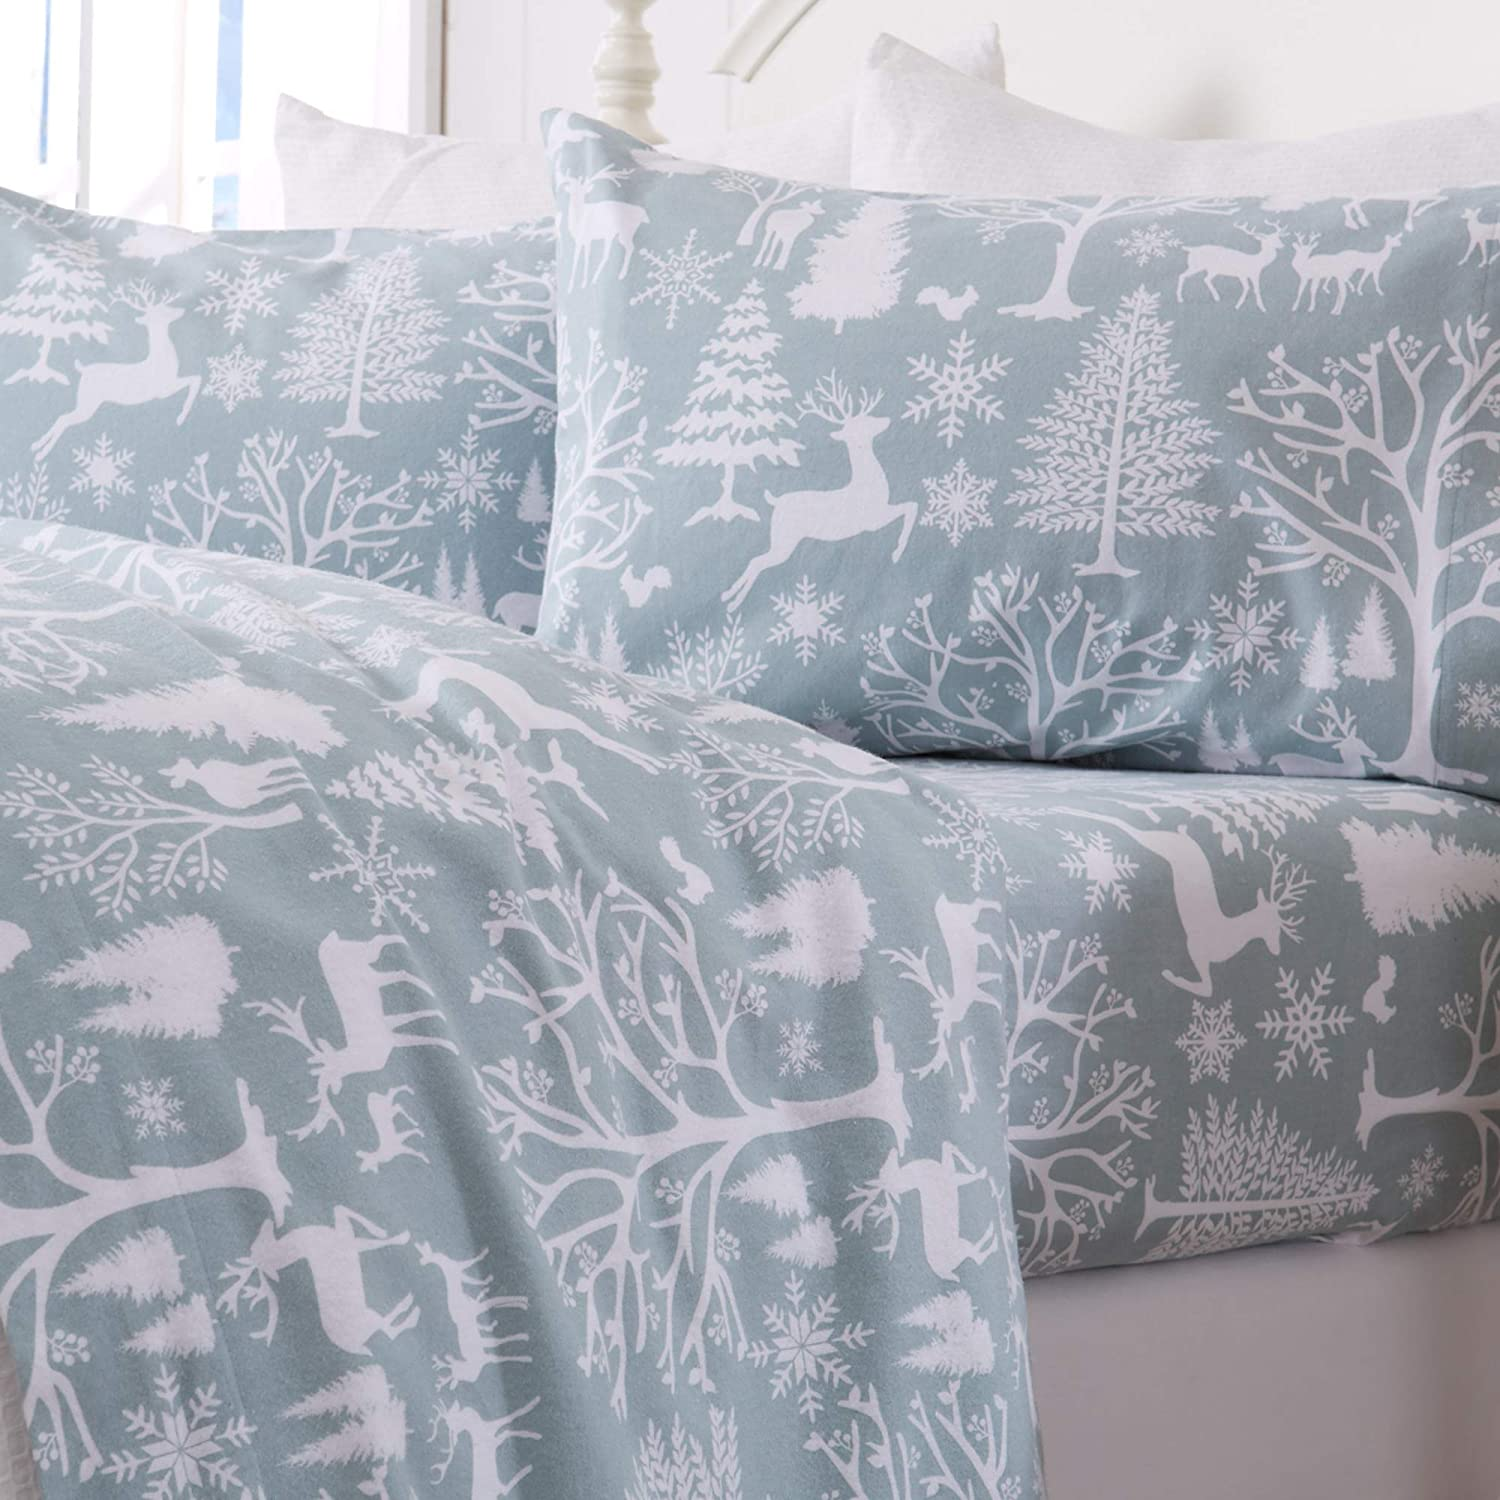 Great Bay Home Extra Soft Enchanted Woods 100% Turkish Cotton Flannel Sheet Set. Warm, Cozy, Luxury Winter Bed Sheets. Belle Collection (Queen, Blue)